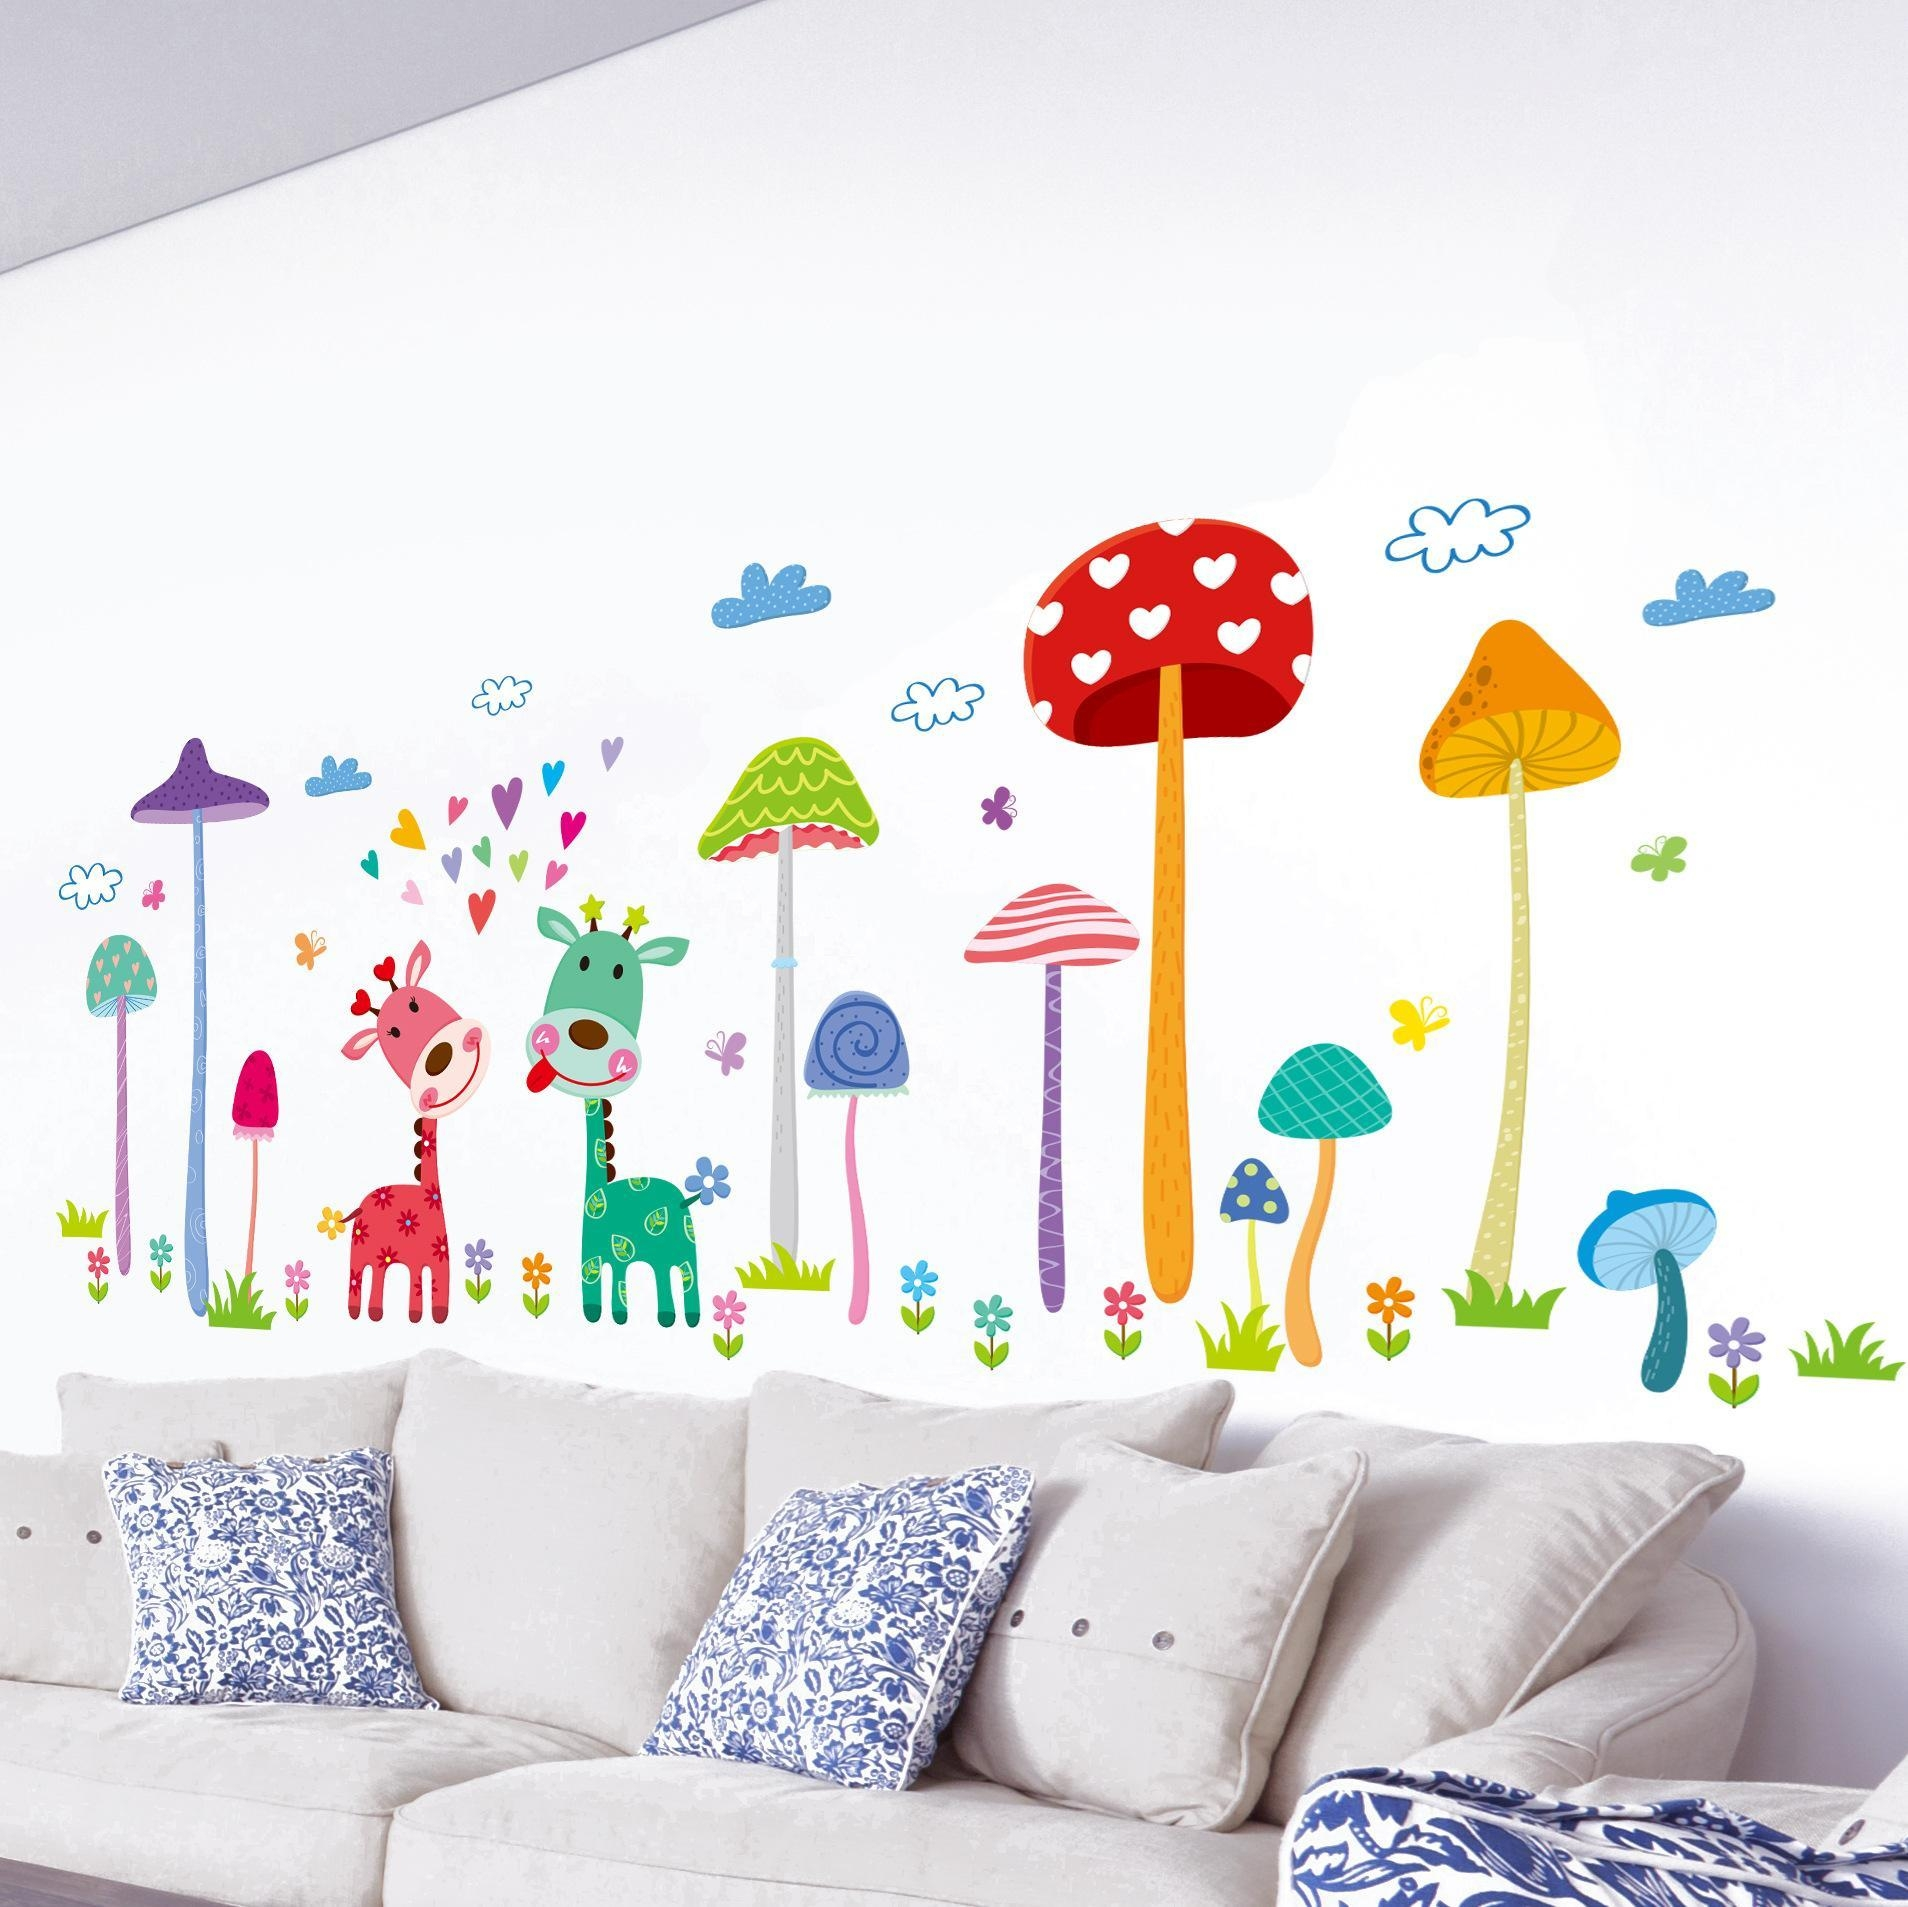 Kindergarten Classroom Wall Decorations ~ Choices of wall art for kindergarten classroom